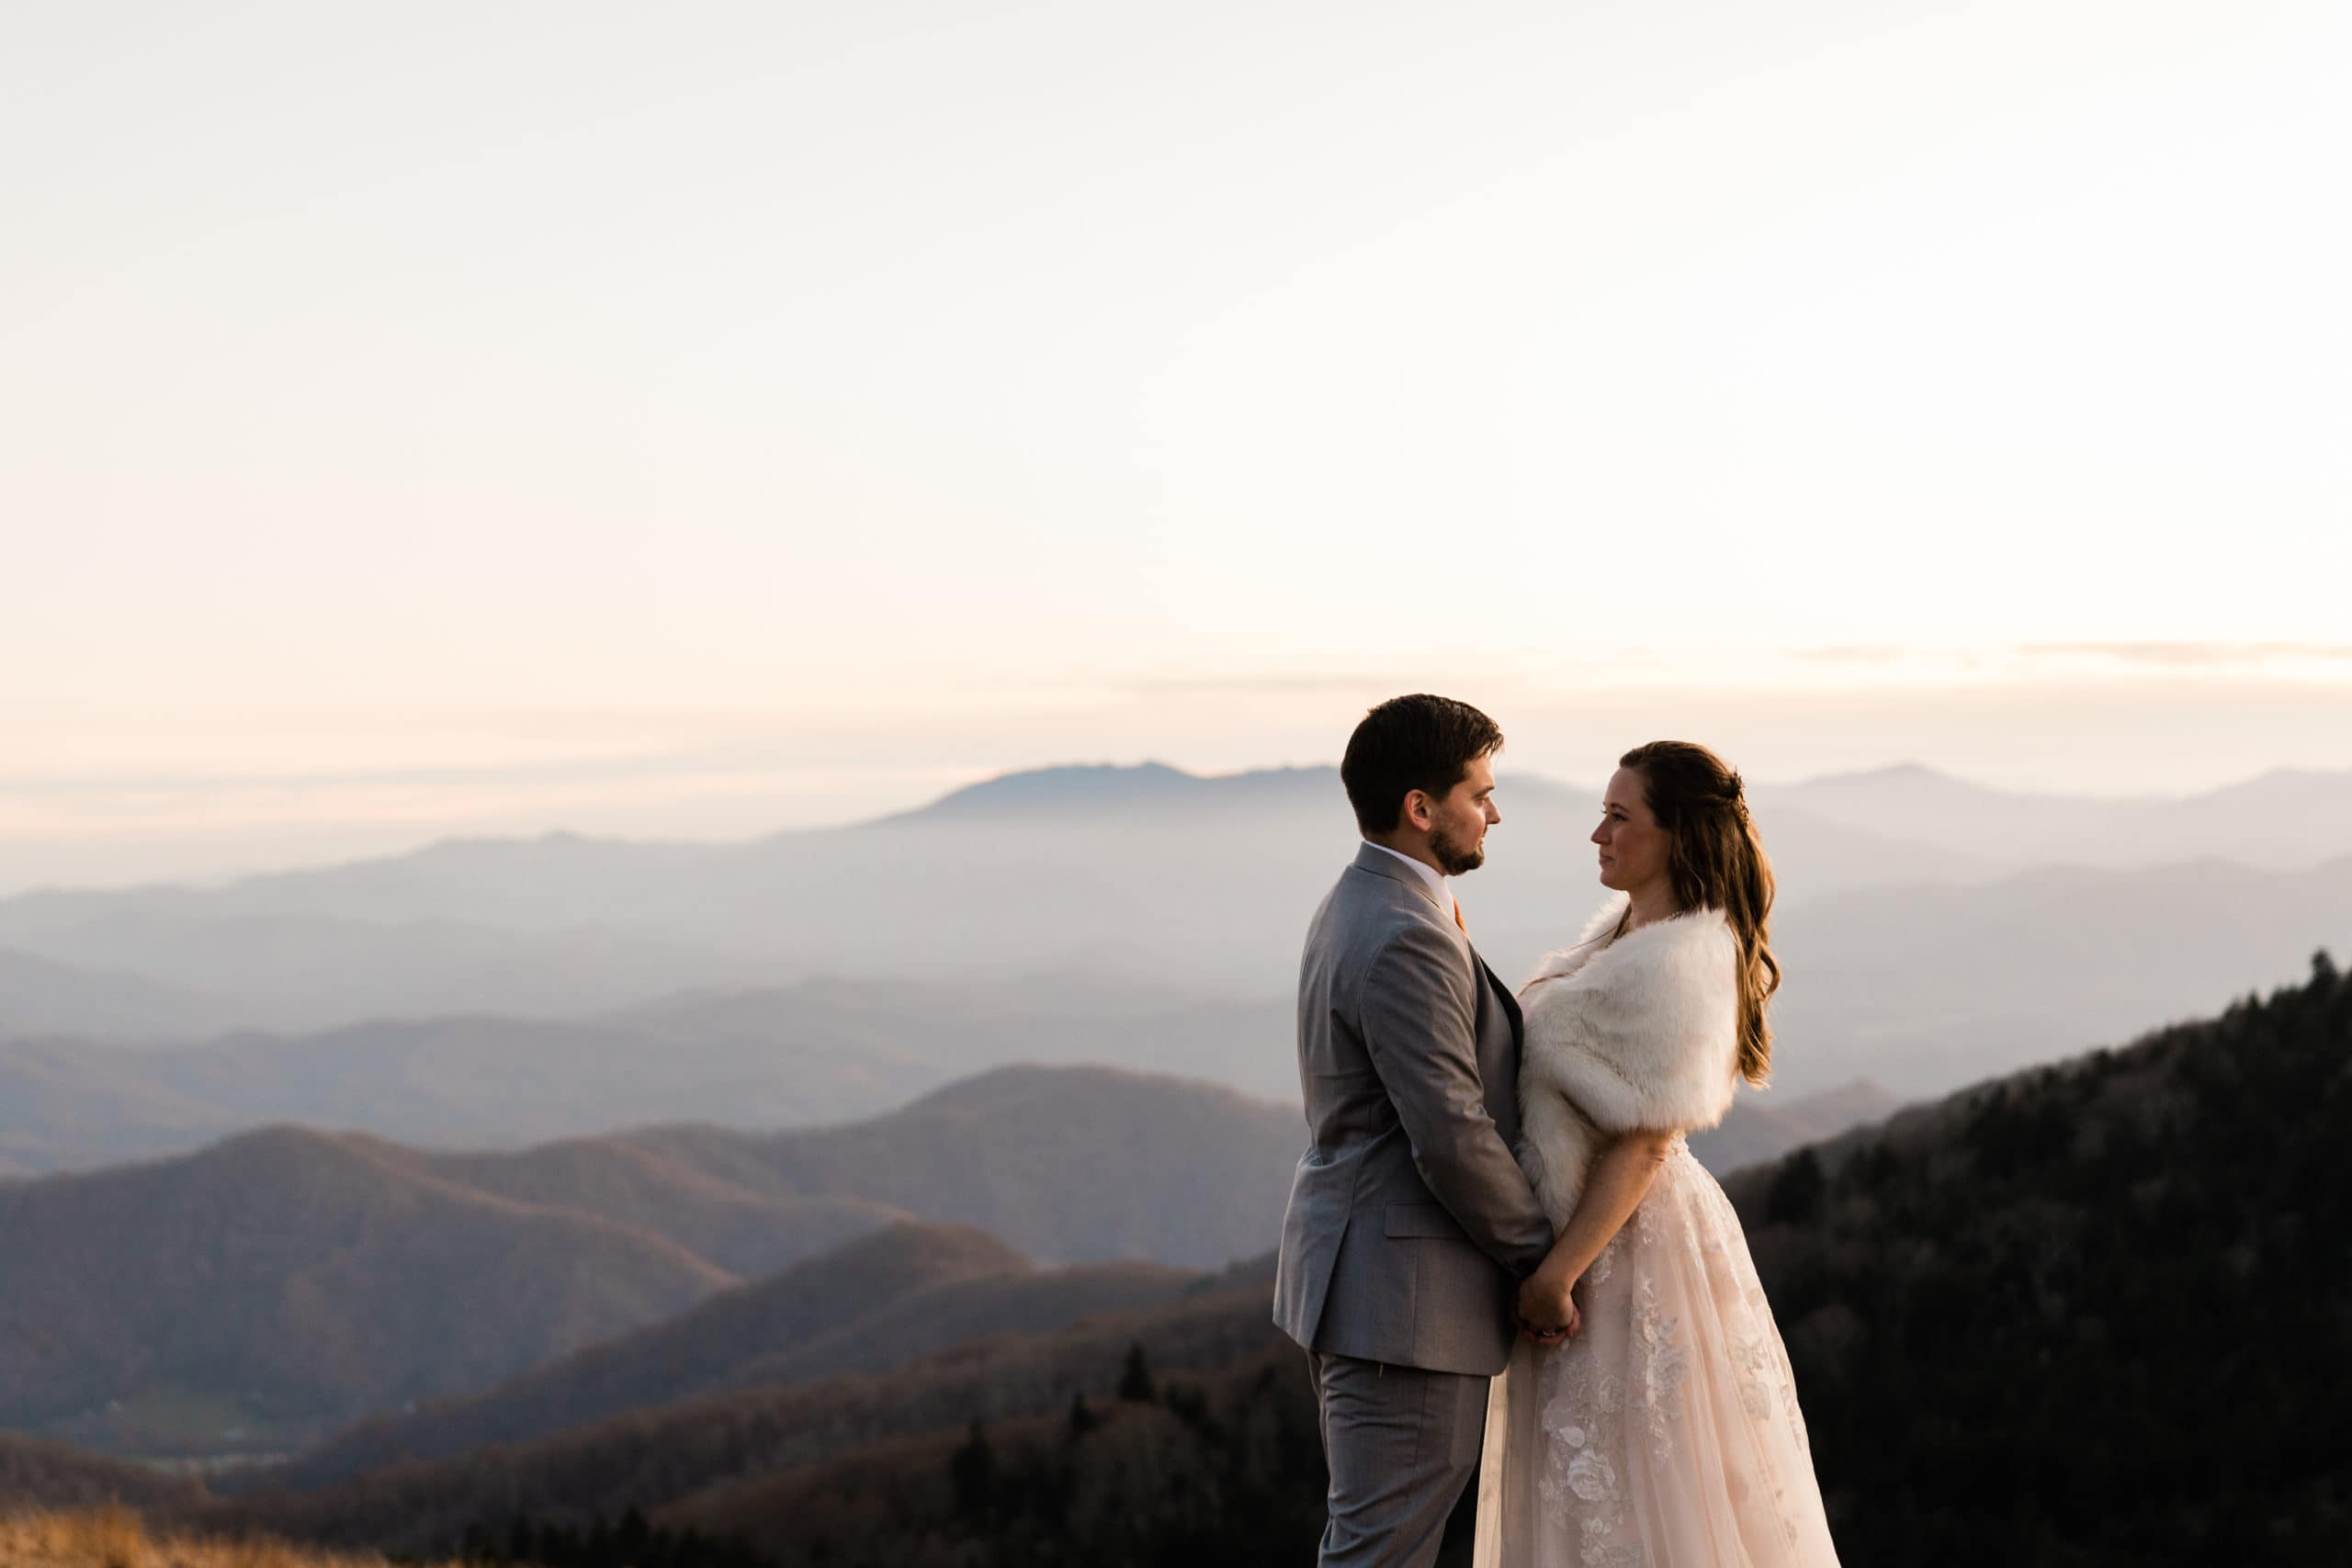 married couple stares into each others eyes with mountains in the background